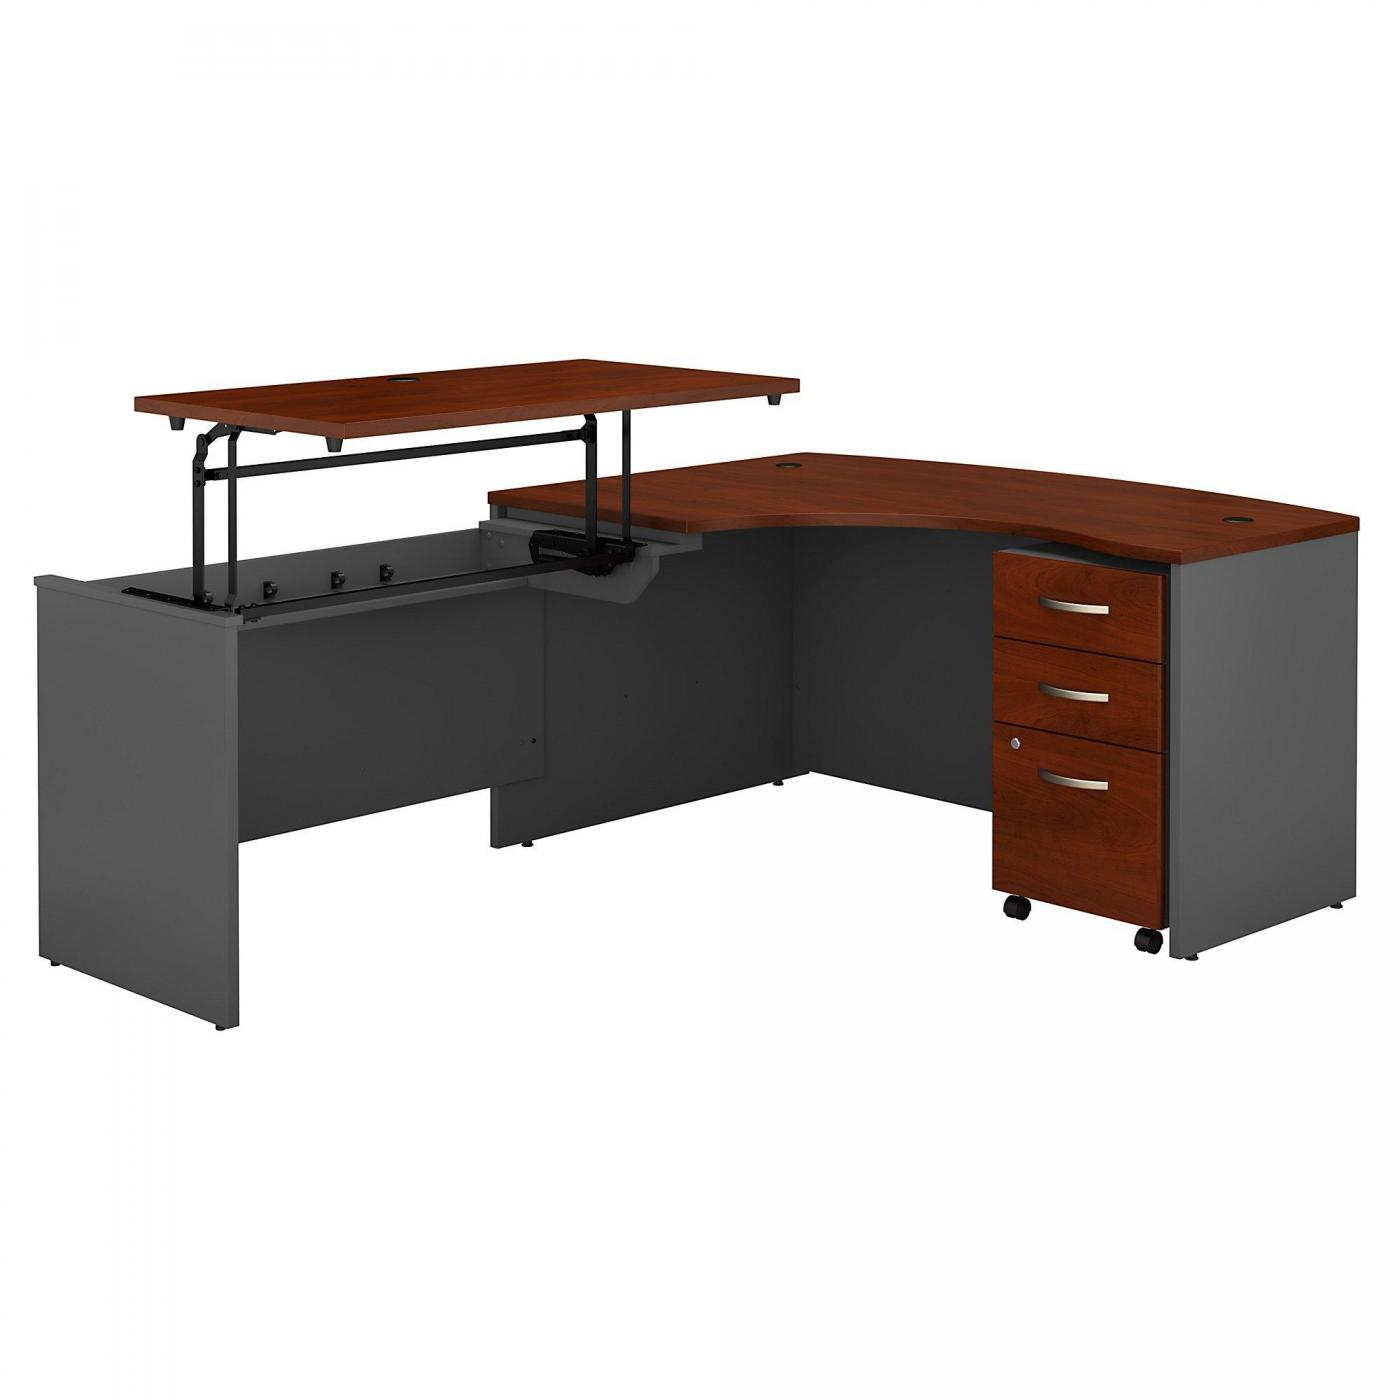 </b></font><b>BUSH BUSINESS FURNITURE SERIES C 60W X 43D RIGHT HAND 3 POSITION SIT TO STAND L SHAPED DESK WITH MOBILE FILE CABINET. FREE SHIPPING. VIDEO:</font> <p>RATING:&#11088;&#11088;&#11088;&#11088;</b></font></b>